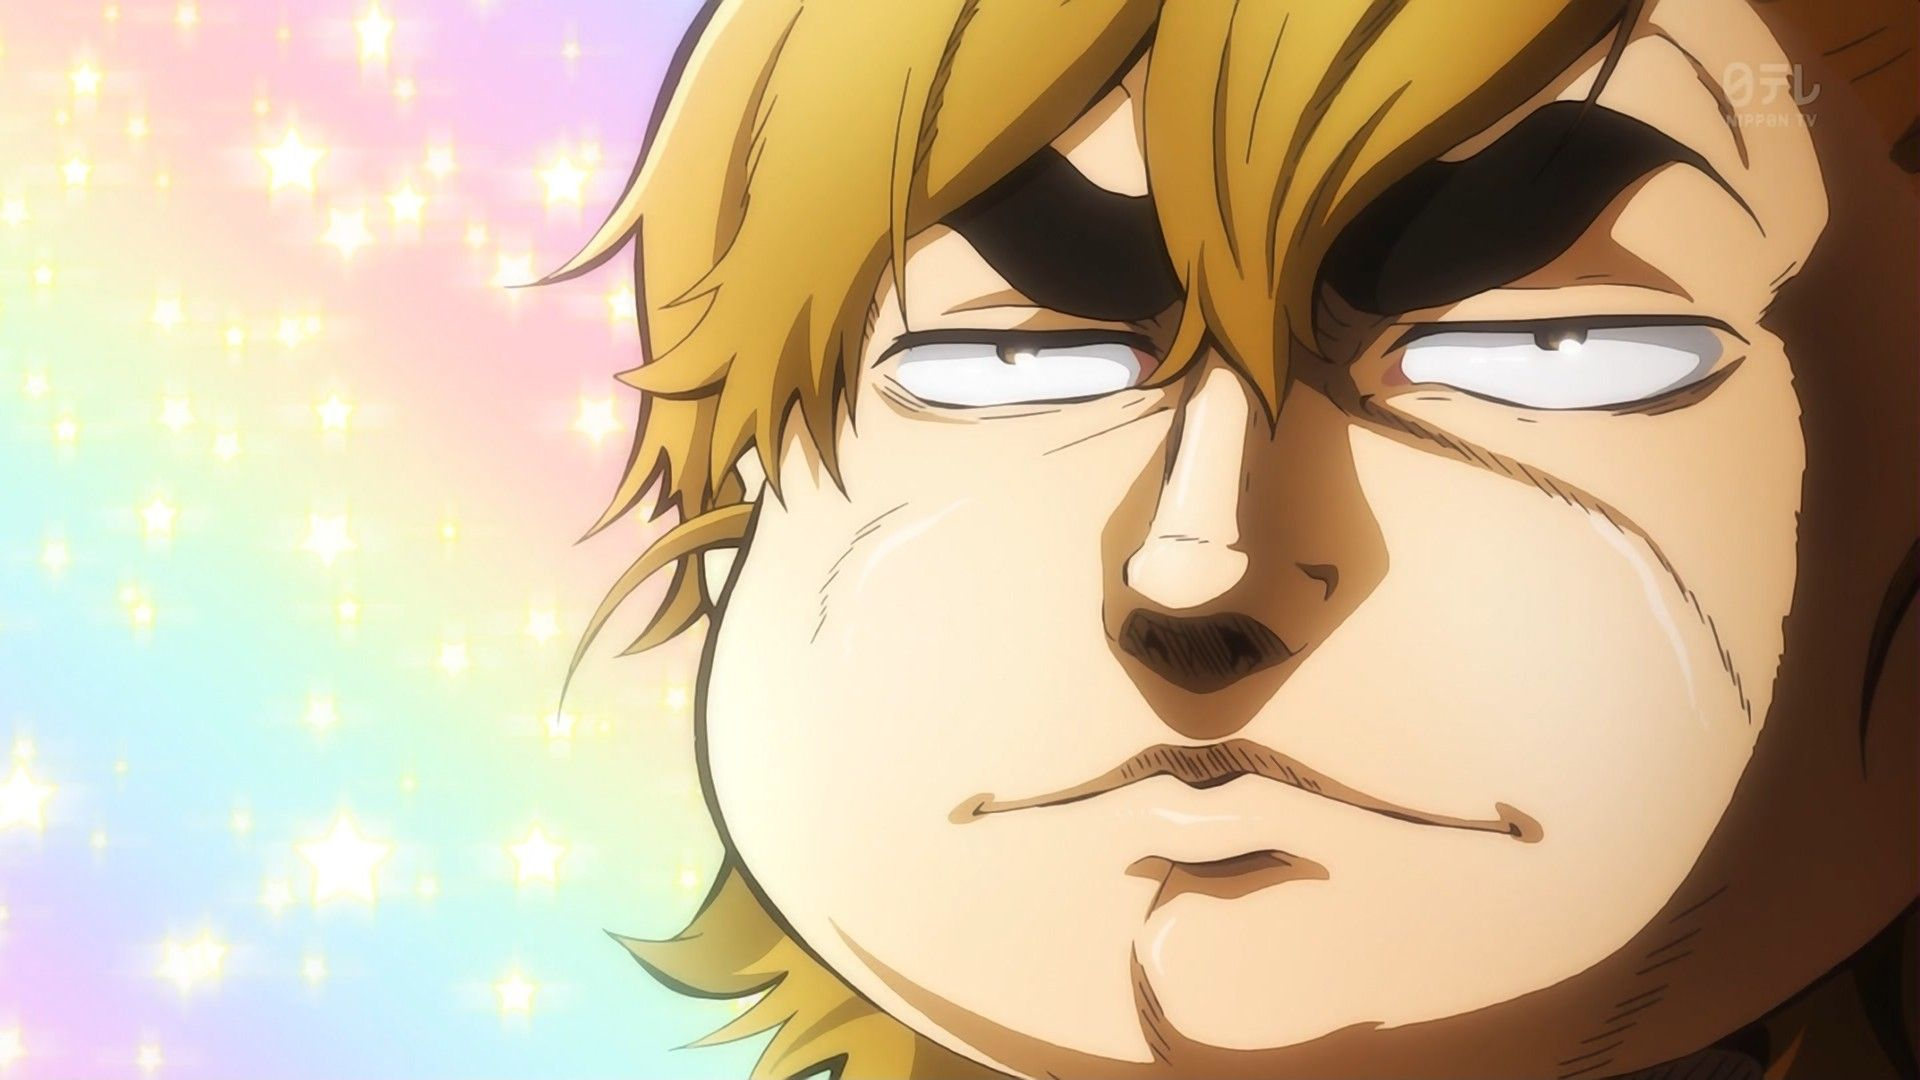 Funny Face Naru Barakamon Anime Wallpaper Barakamon